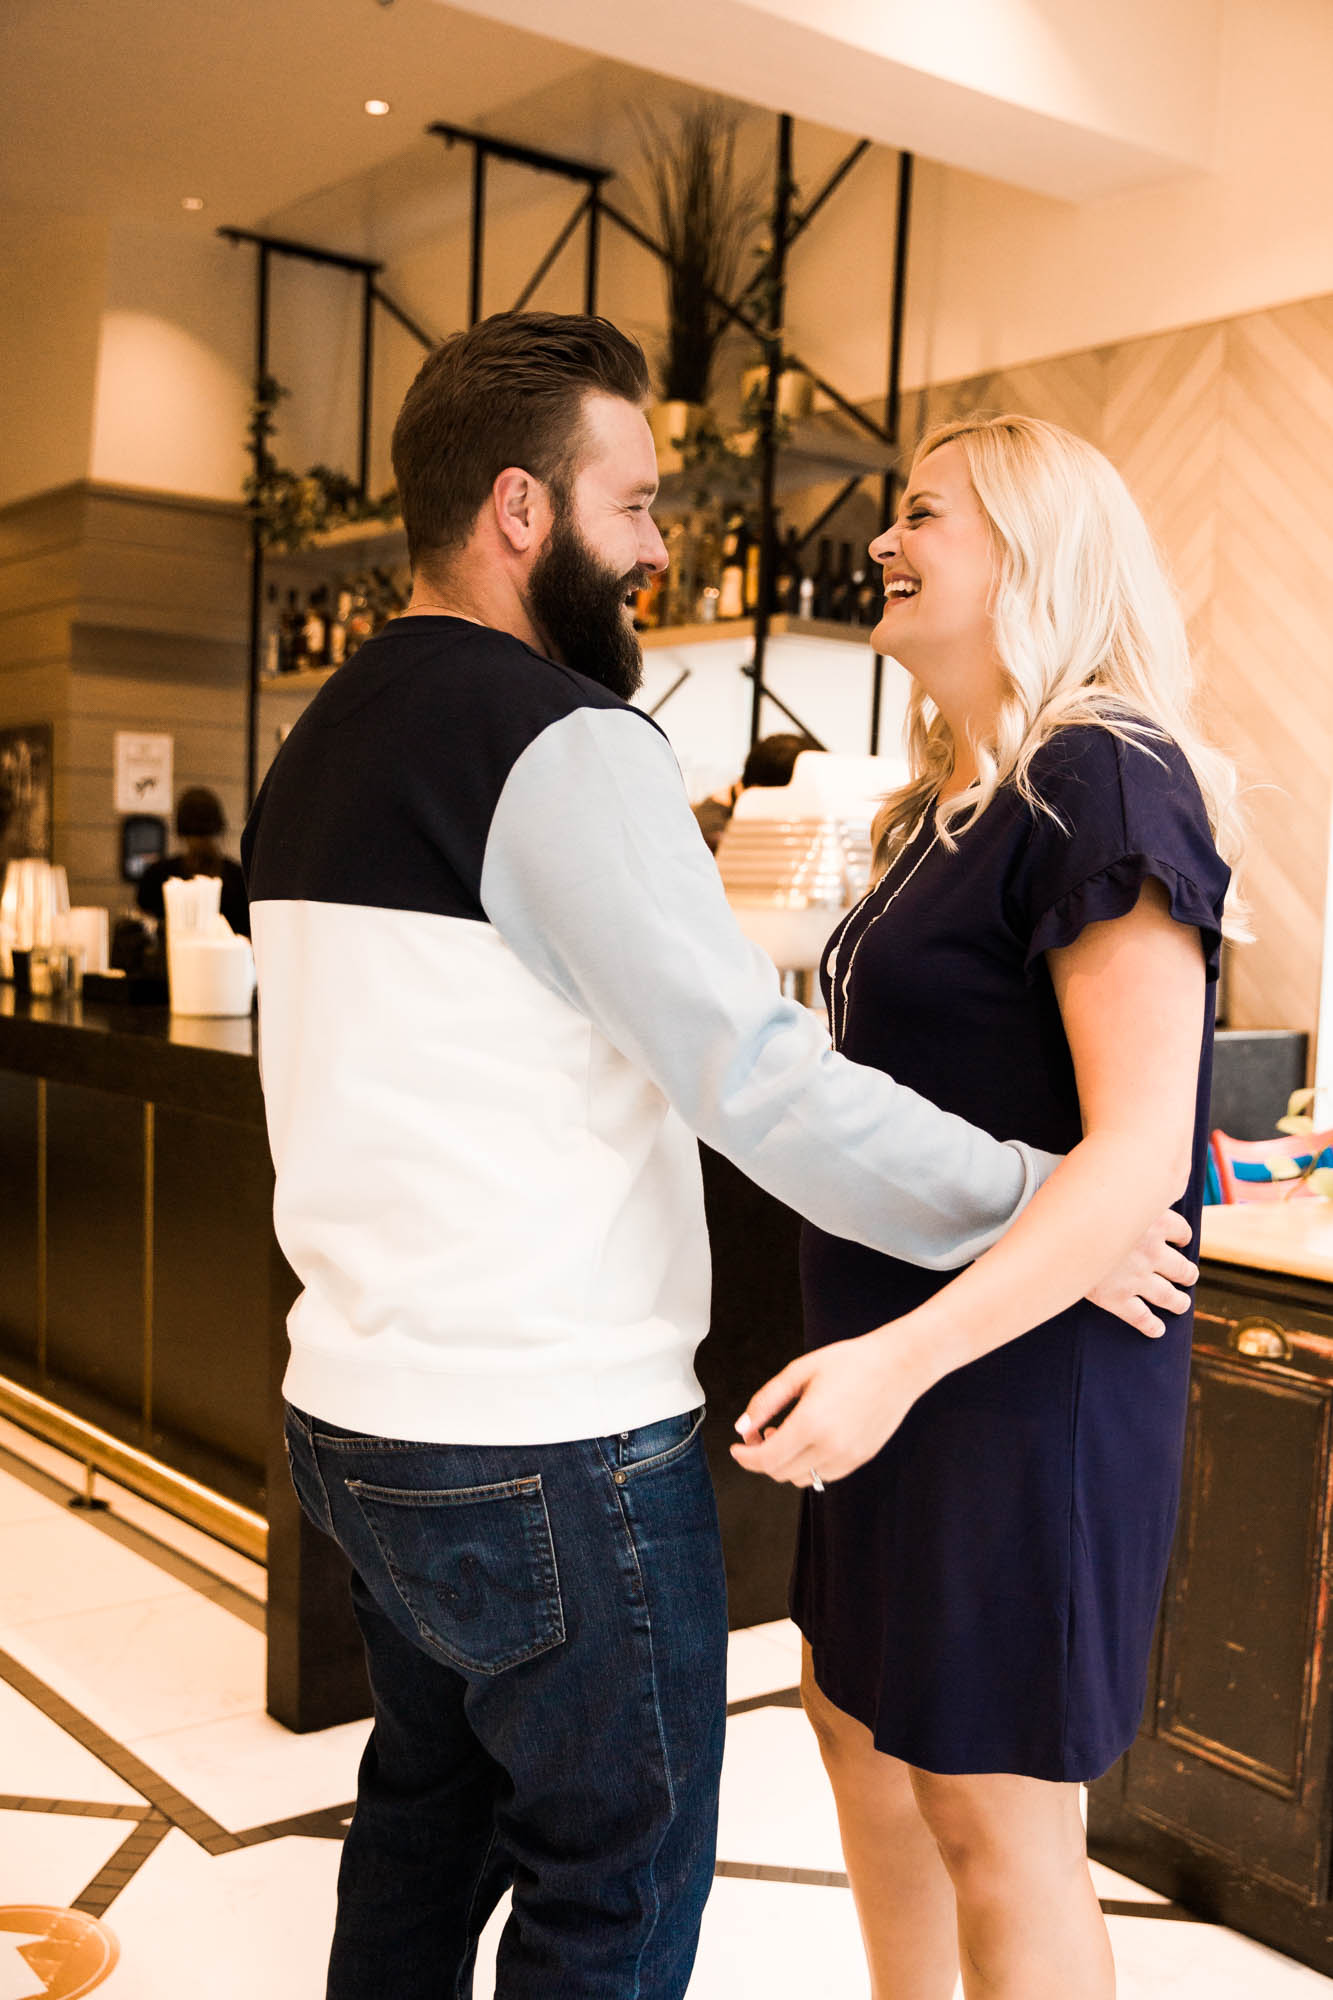 Calgary wedding photographer, engagement photos at Alforno Bakery and Cafe, couple sitting getting coffee